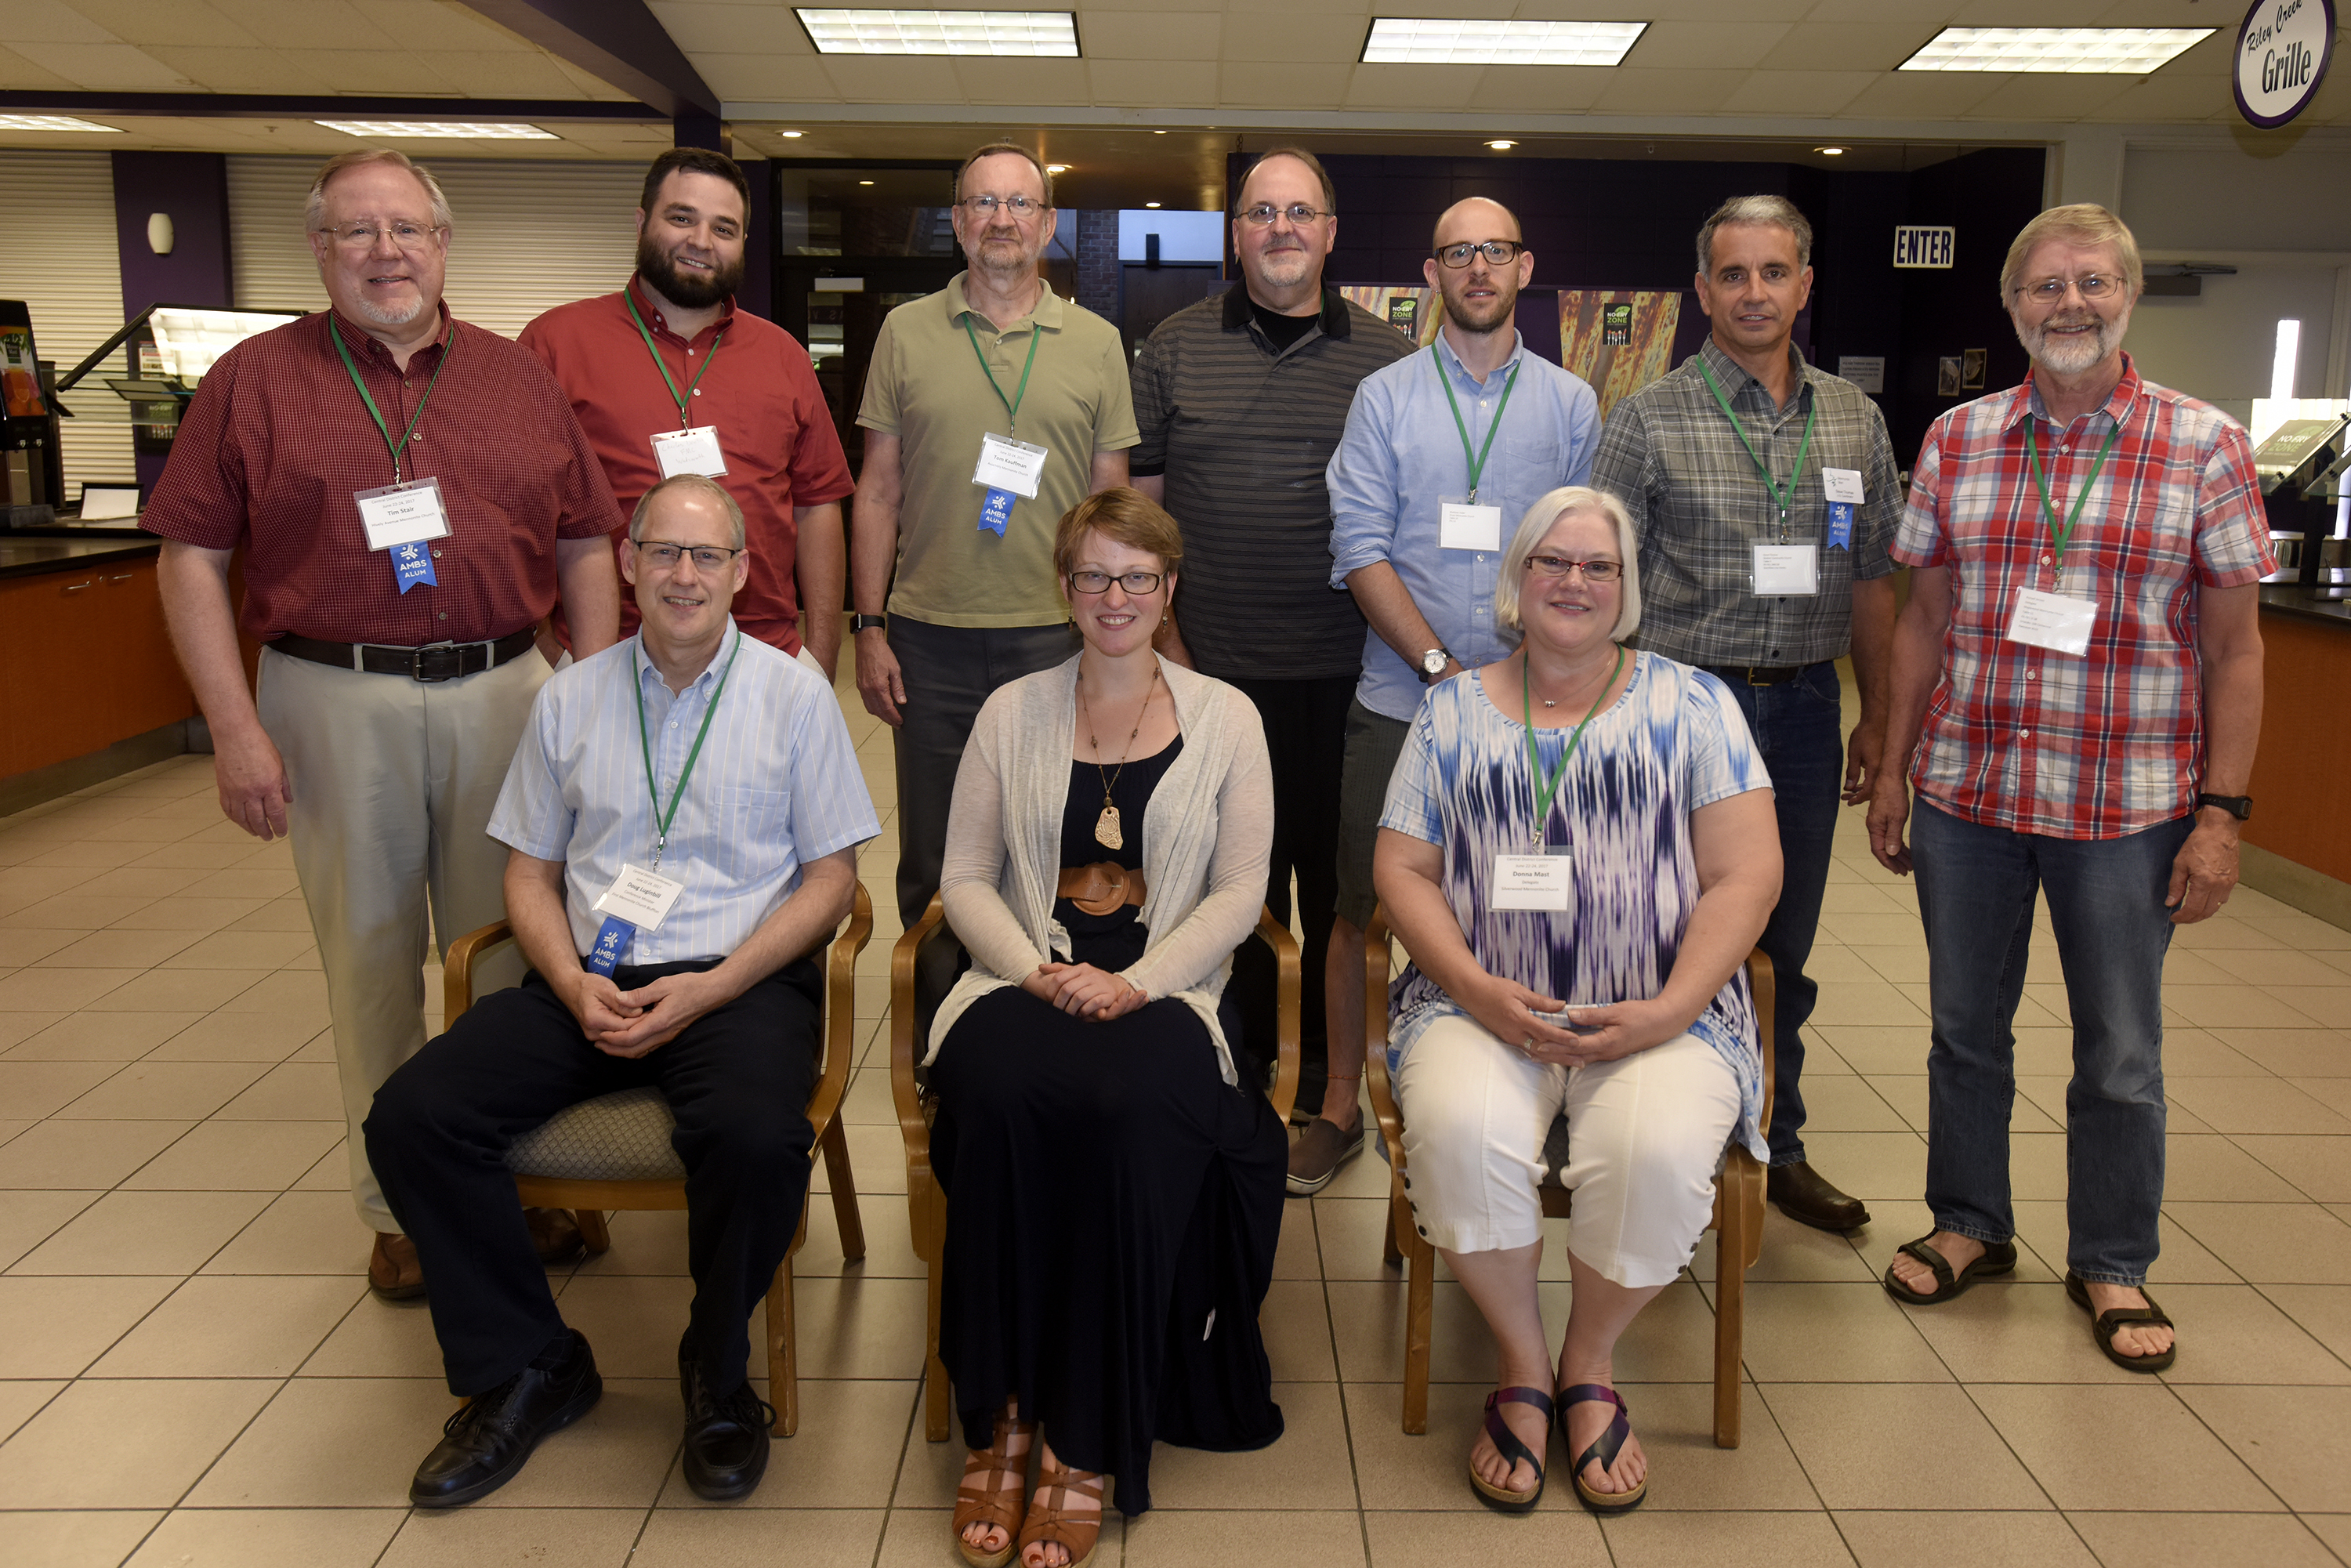 Pastors credentialed or installed during the previous year were recognized at the end of Central District Conference, Friday, June 23, 2017, at Bluffton University, Bluffton, OH. From left front row are: Doug Luginbill, Emily Hedrick, and Donna Mast. Row two from left: Tim Stair, Charles Bontrager, Tom Kauffman, Michael Gehrman, Matthew Yoder, Steve Thomas, and Russell Jensen.  Photograph by J. Tyler Klassen